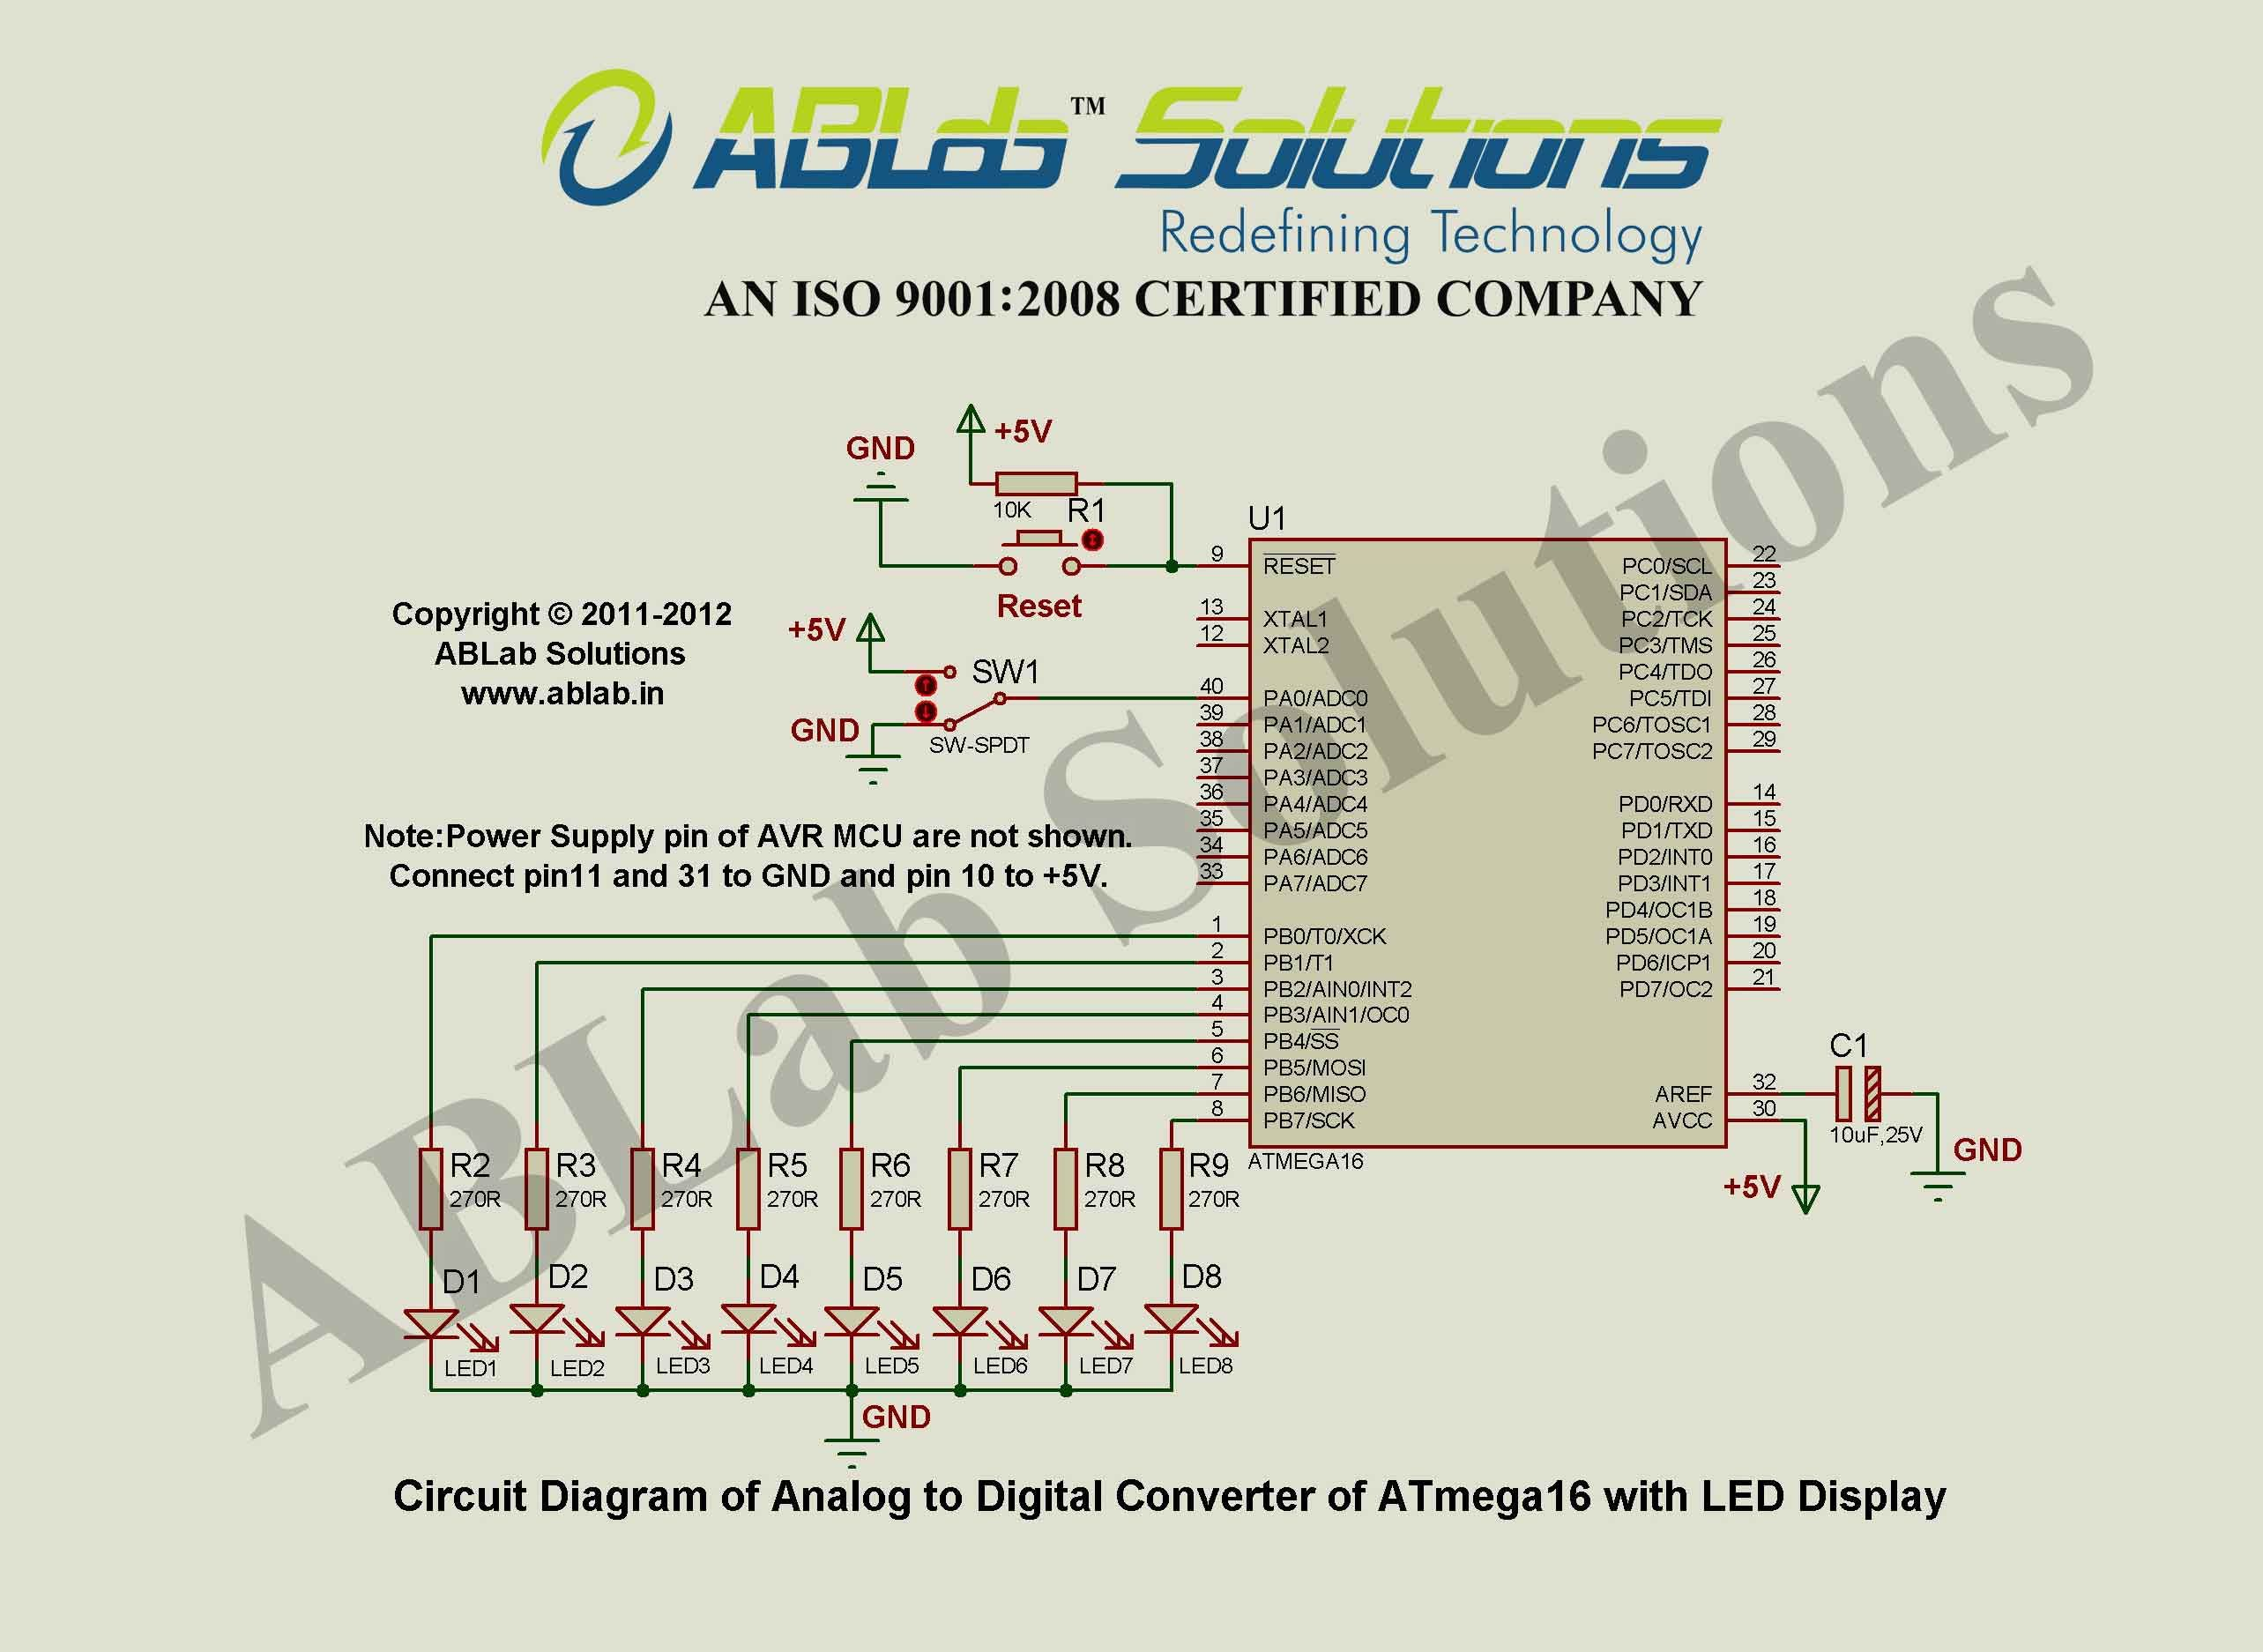 Analog To Digital Converter Of Avr Atmega16 Microcontroller With Led Display Circuit Diagram Ablab Solutions